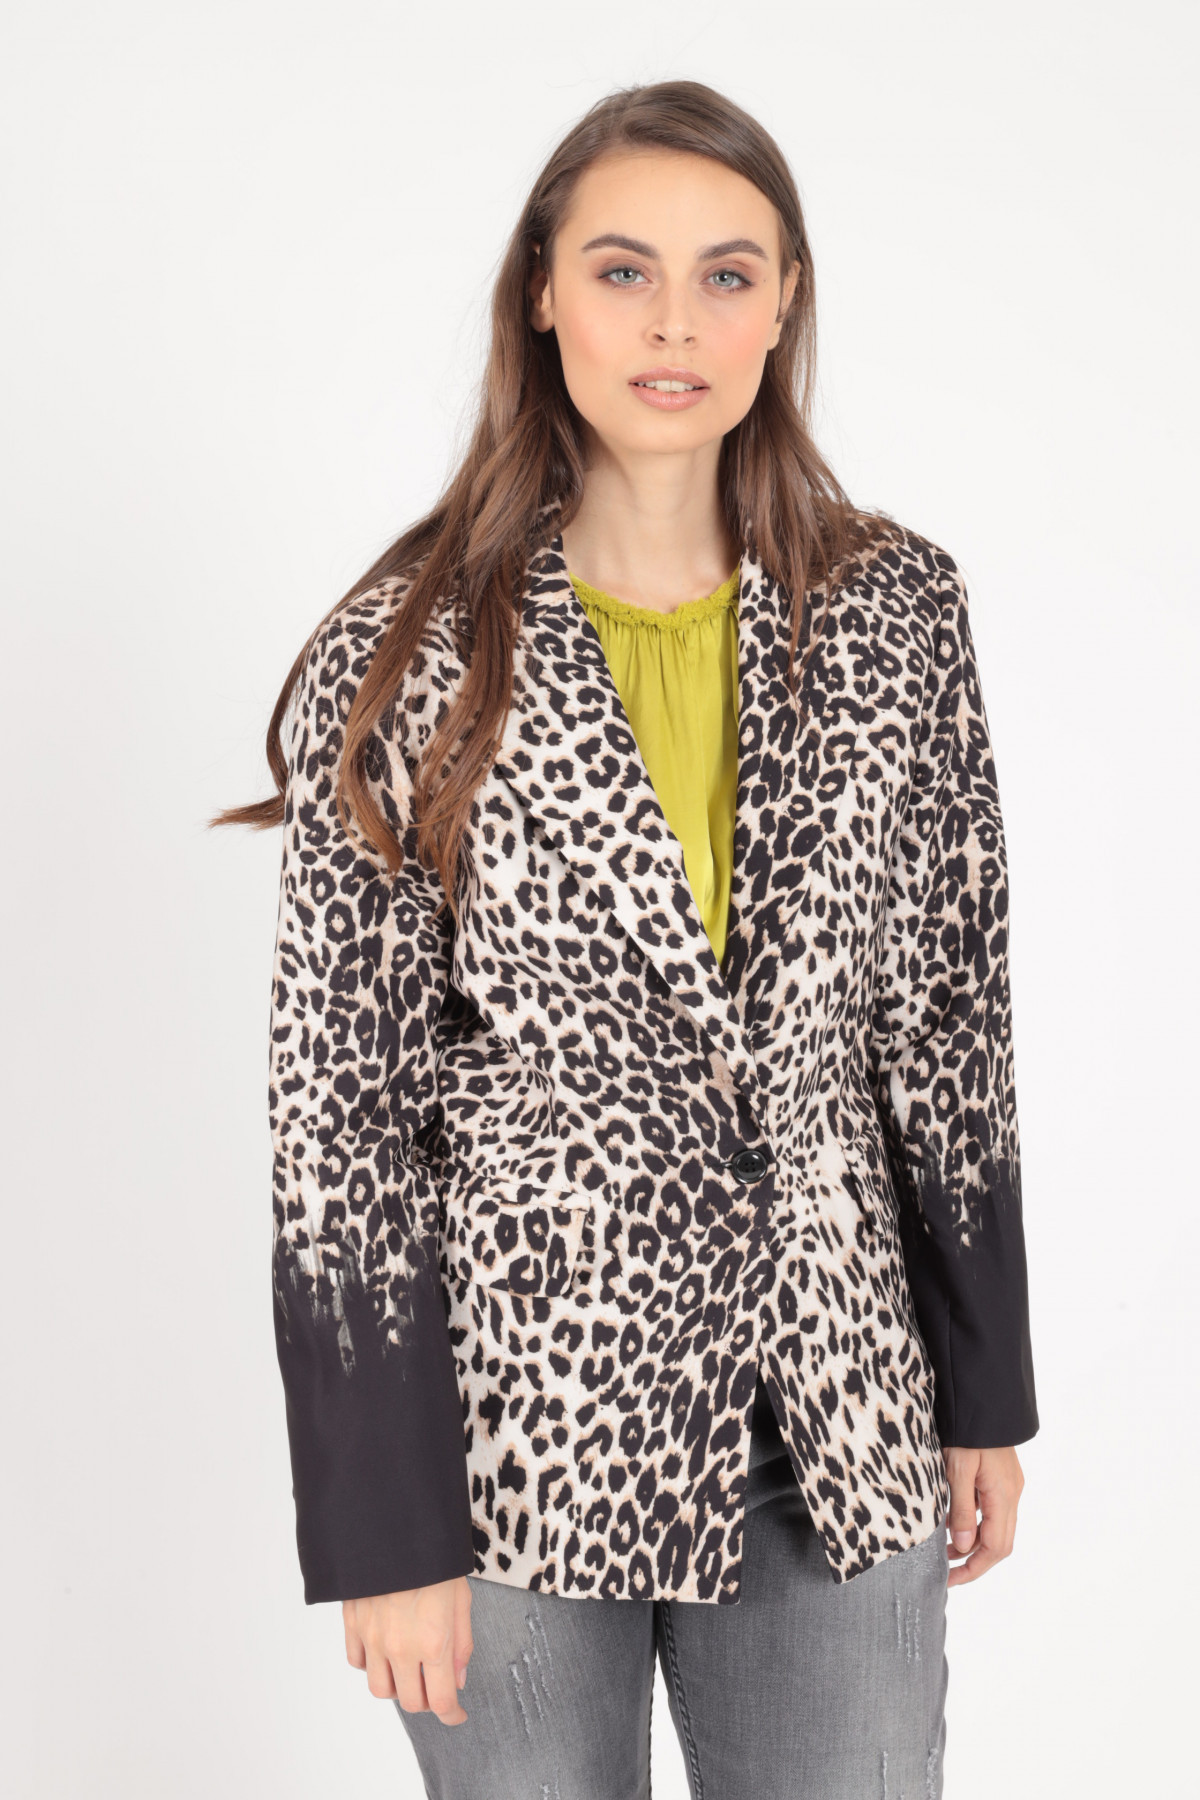 Over Jacket with Classic Revers in Animalier Print